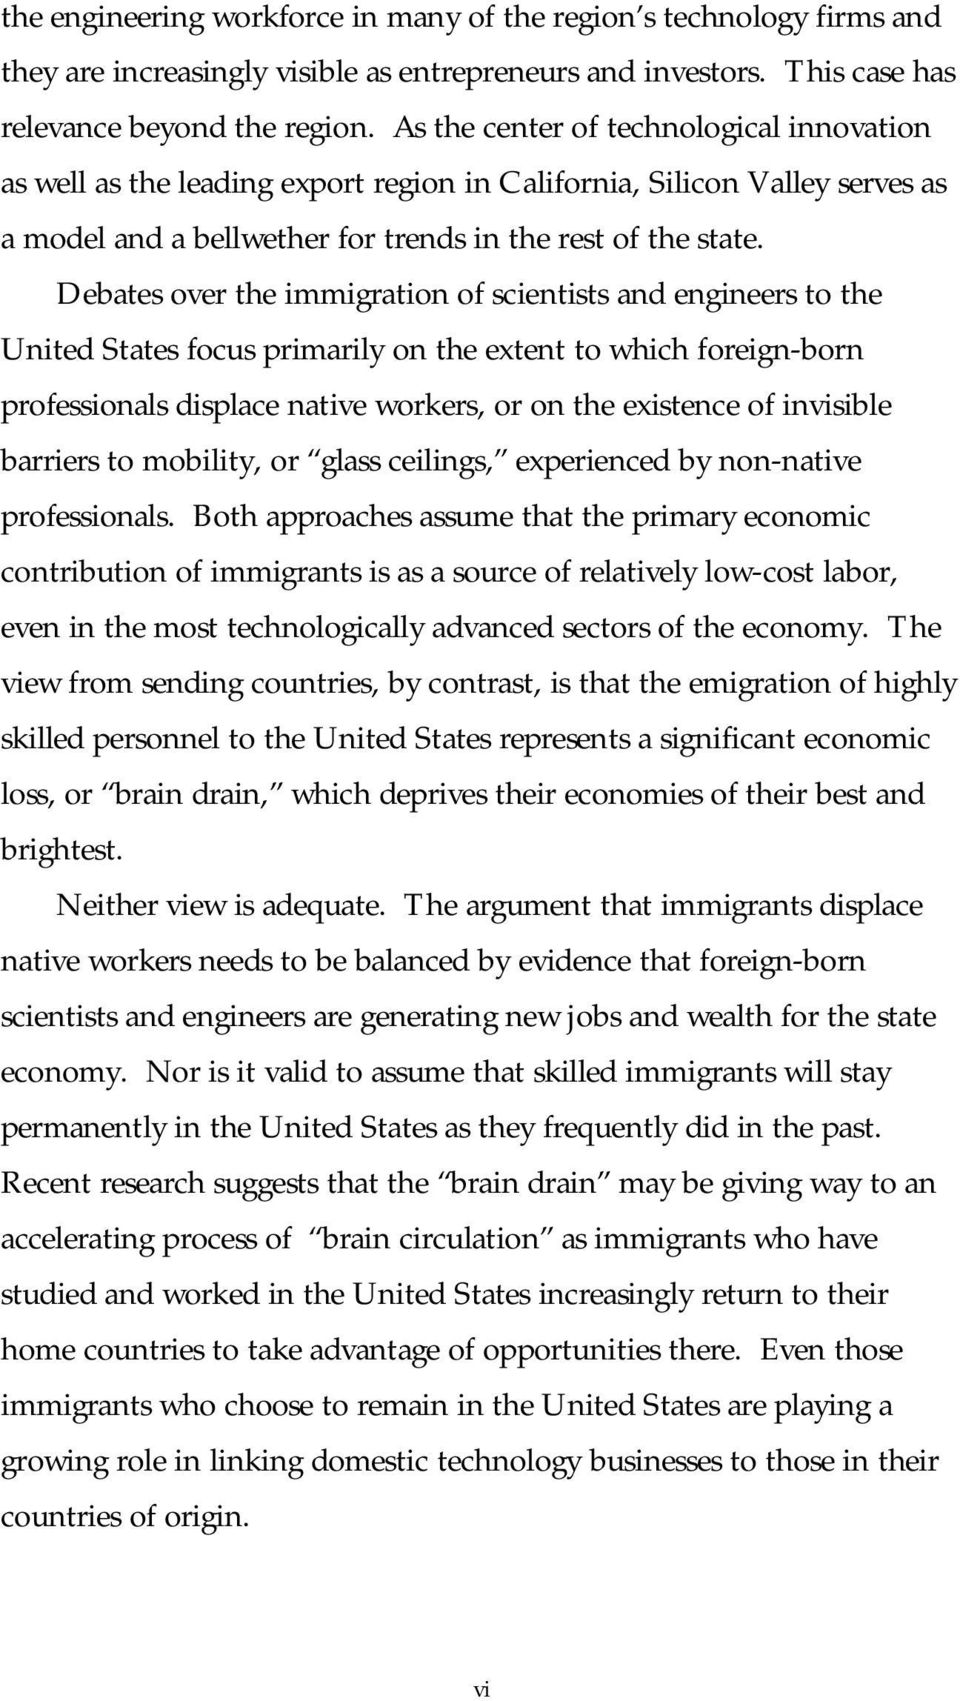 Debates over the immigration of scientists and engineers to the United States focus primarily on the extent to which foreign-born professionals displace native workers, or on the existence of